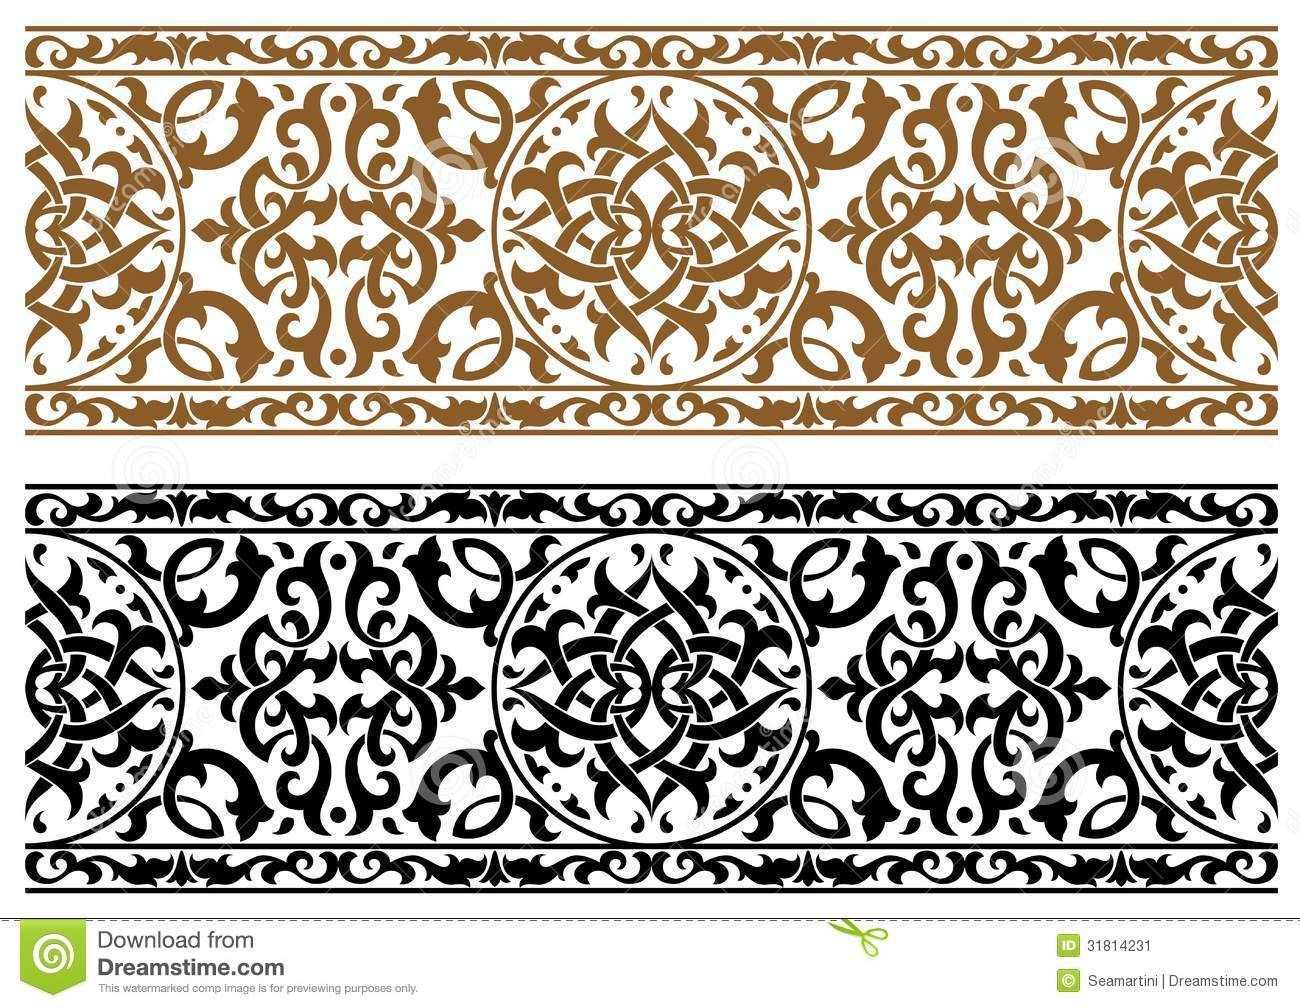 Abstract Arabic Ornament Stock Vector Illustration Of Oriental 31814231 In 2020 Retro Ornaments Stencil Patterns Abstract